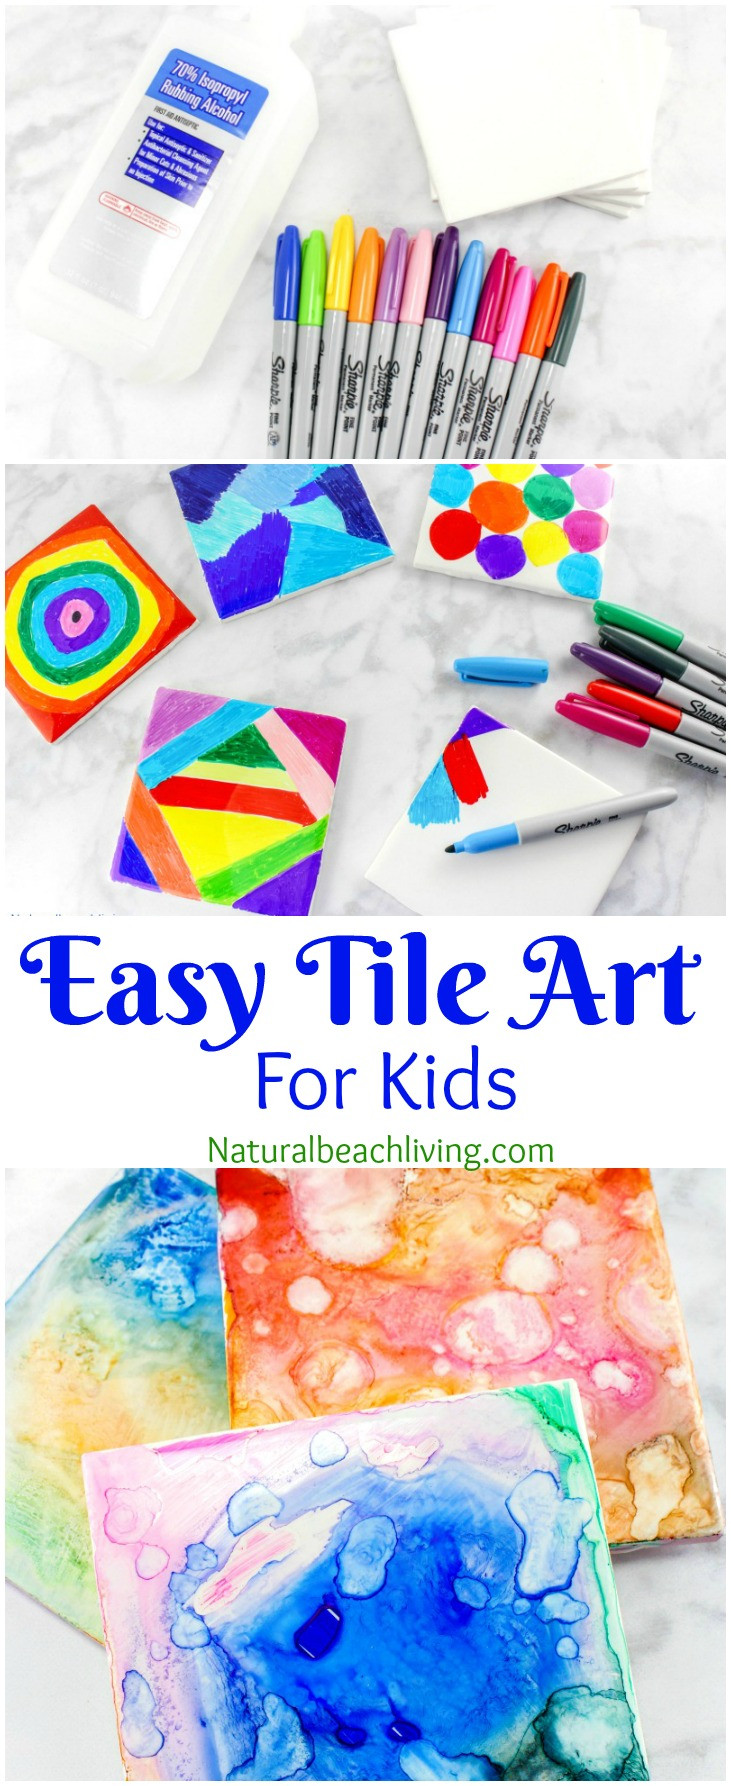 Best ideas about Easy Art Projects For Kids . Save or Pin Easy Tile Art for Kids That Everyone Will Enjoy Best Now.